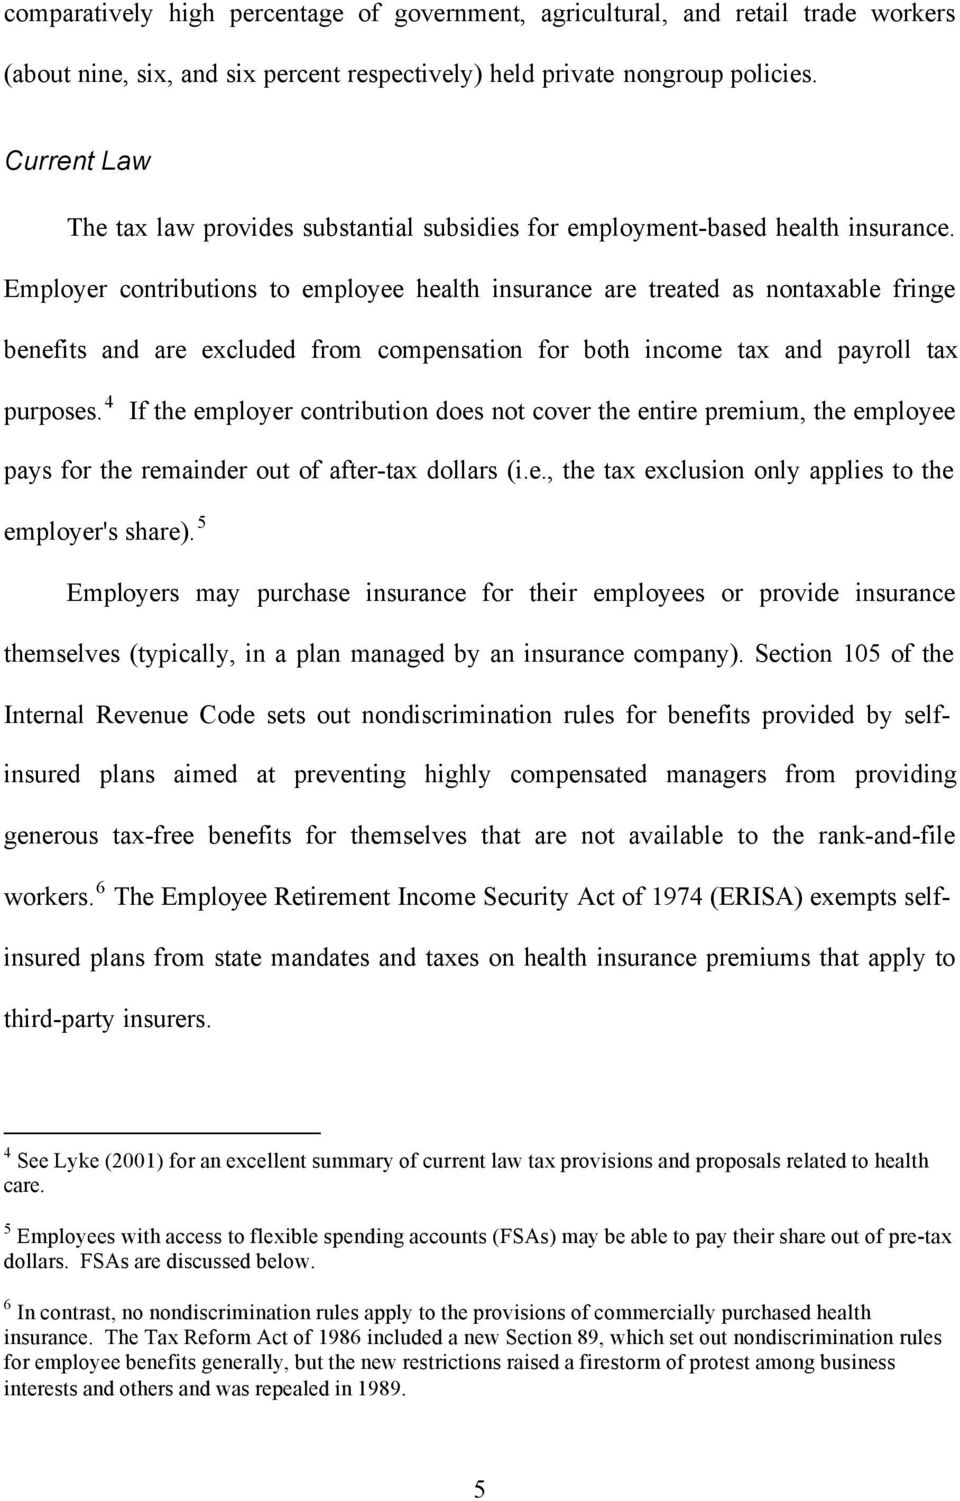 Employer contributions to employee health insurance are treated as nontaxable fringe benefits and are excluded from compensation for both income tax and payroll tax purposes.